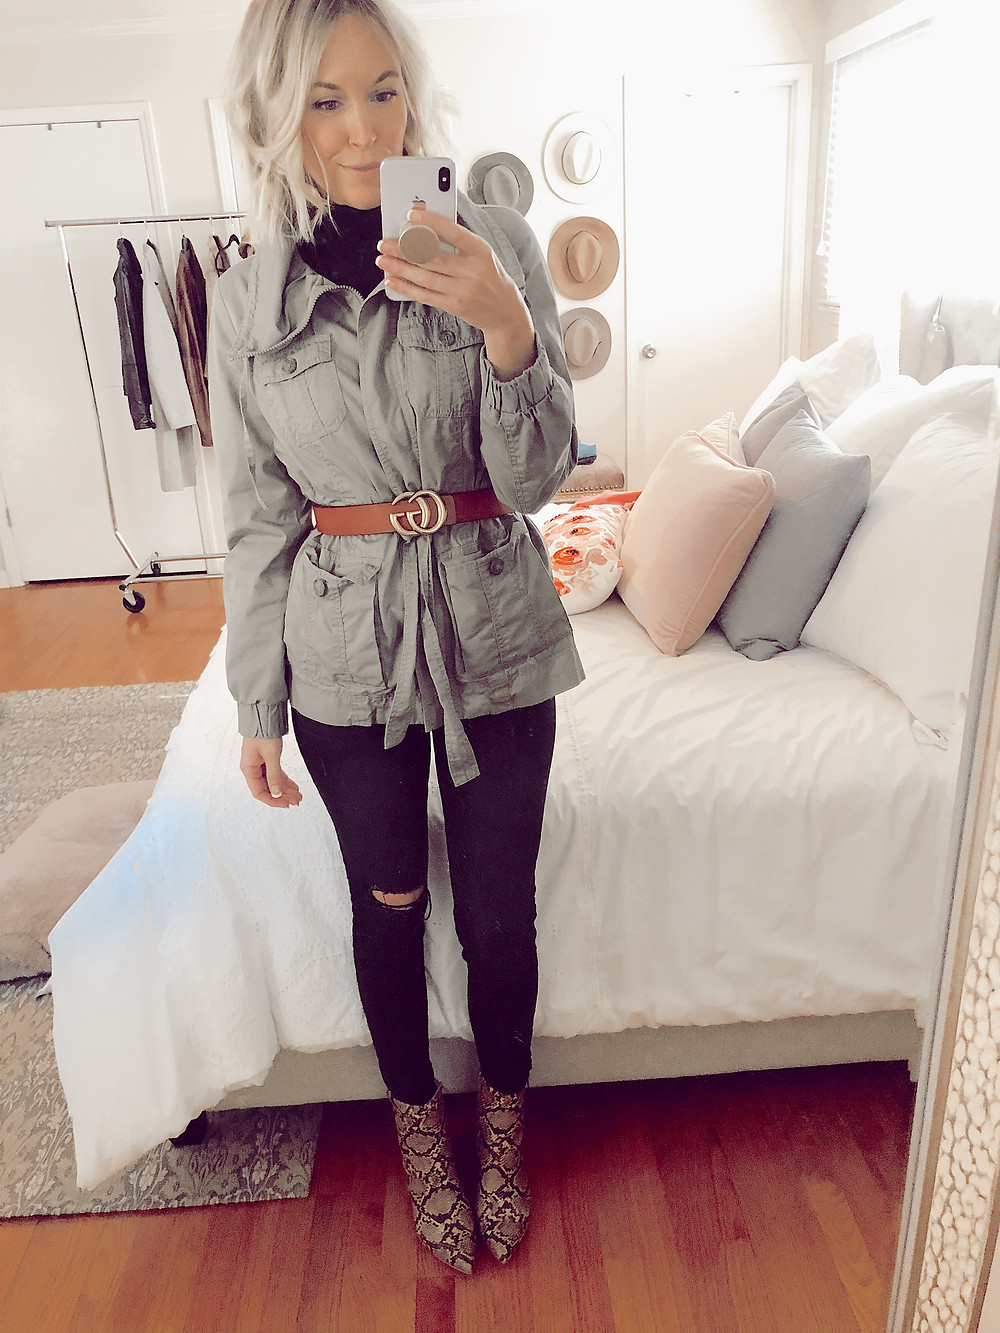 How to style snakeskin booties for fall, belted utility jacket over black turtleneck and black jeans, fall casual outfit ideas, style tips for women, fashion blog